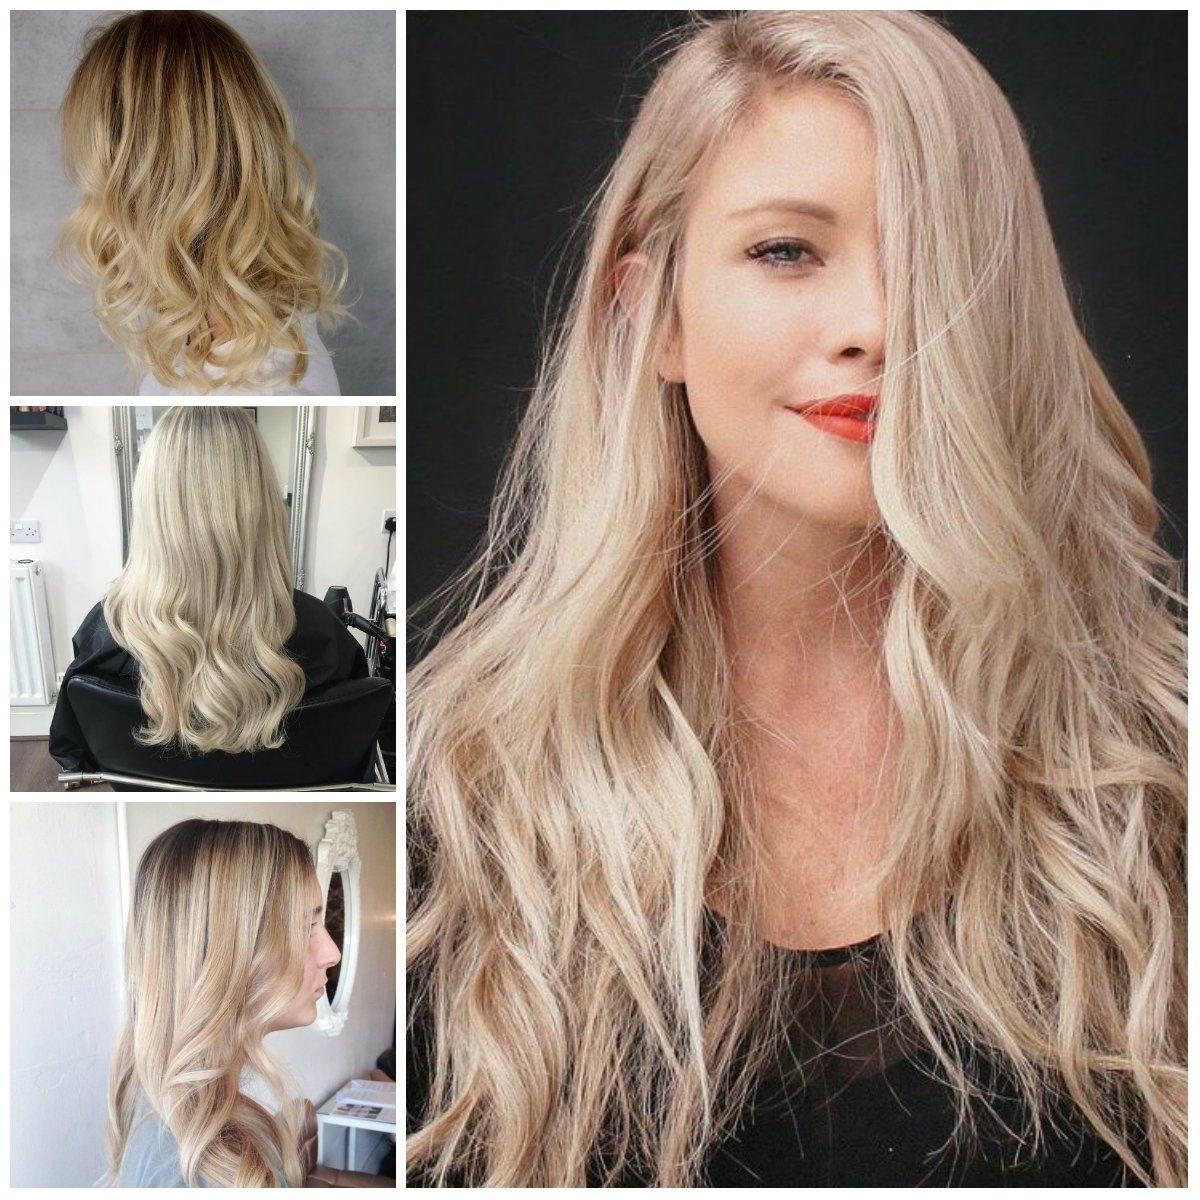 10 Attractive Hair Coloring Ideas For Blondes light blonde hair color ideas for 2017 best hair color ideas 3 2020